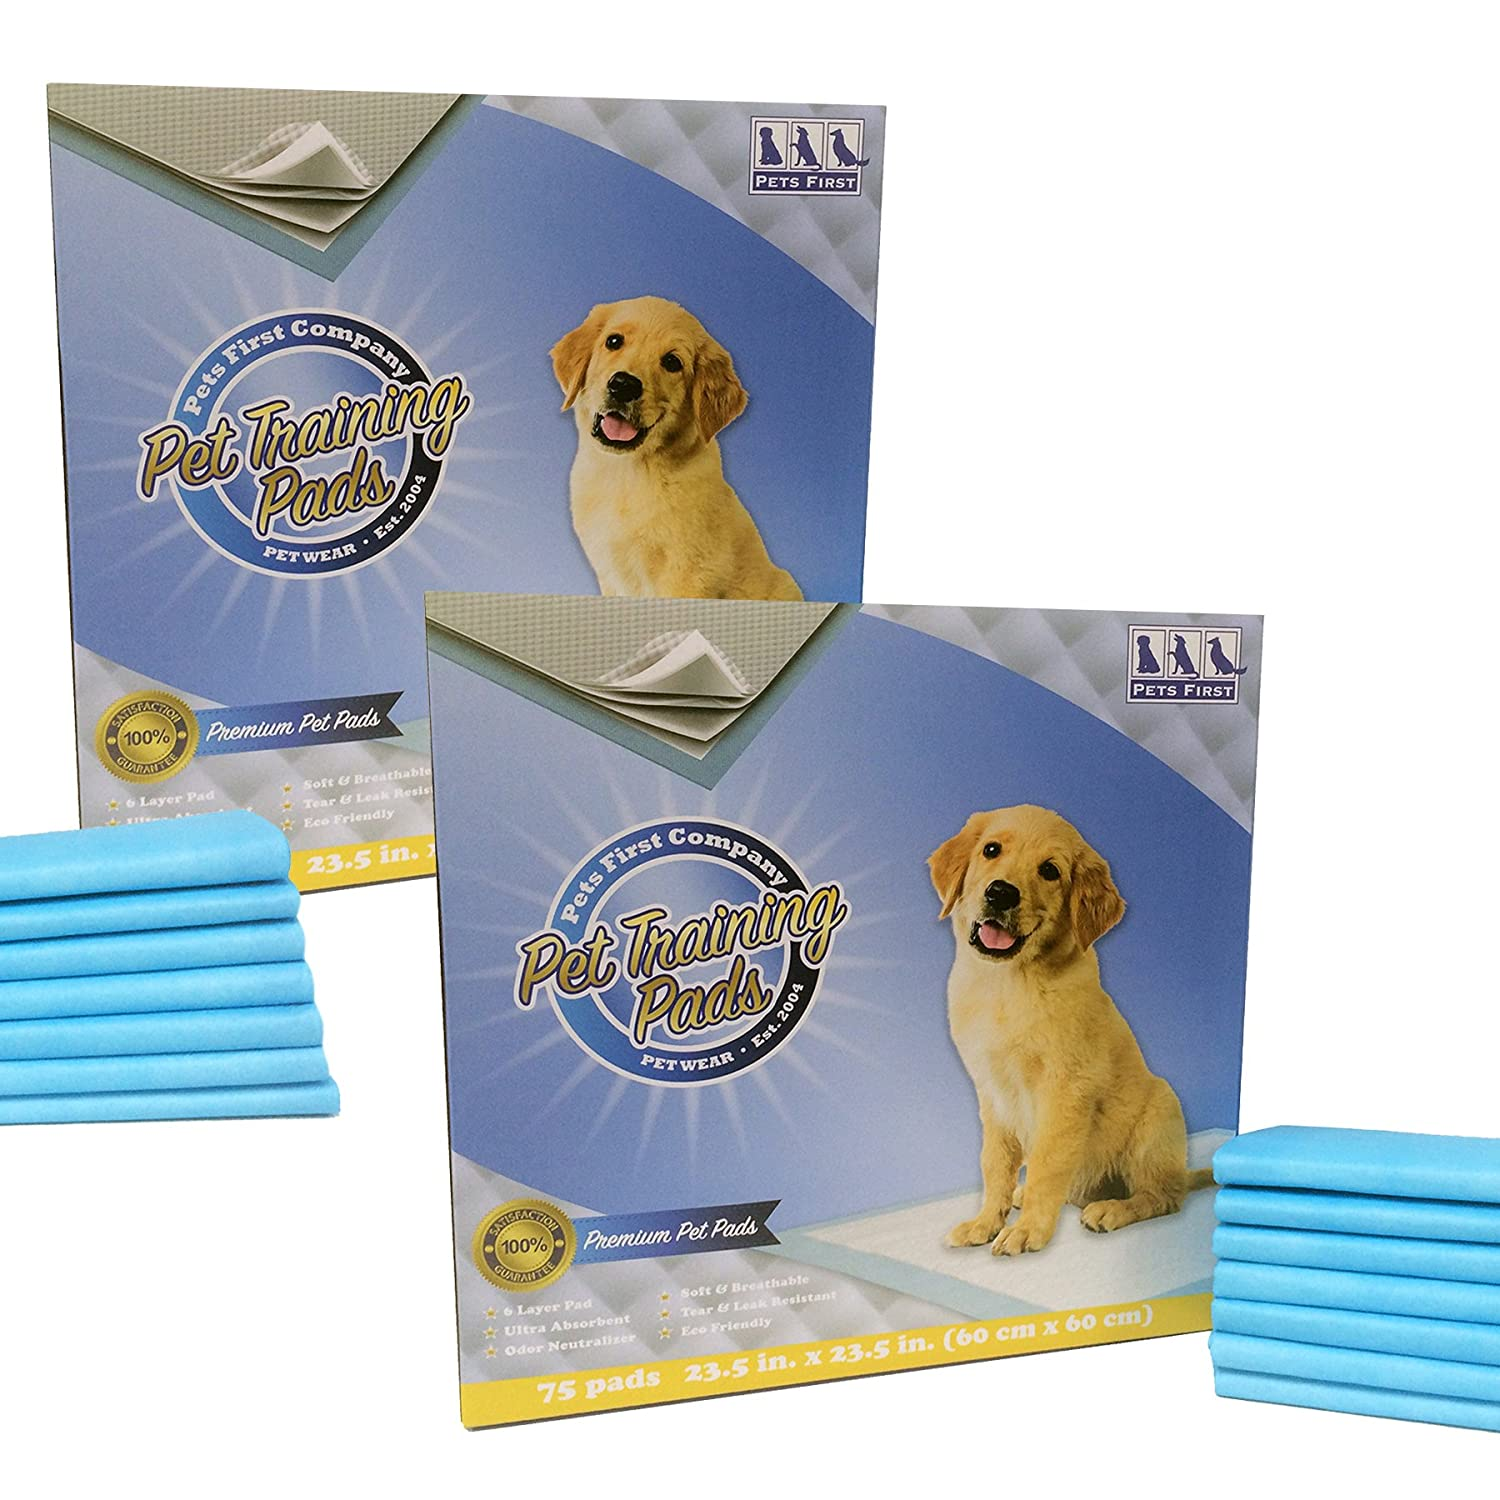 150 Counts Premium Training Pads (150 Count) Newest Version Most Absorbent Puppy Pads. Latest Tech Dog Pee Pads